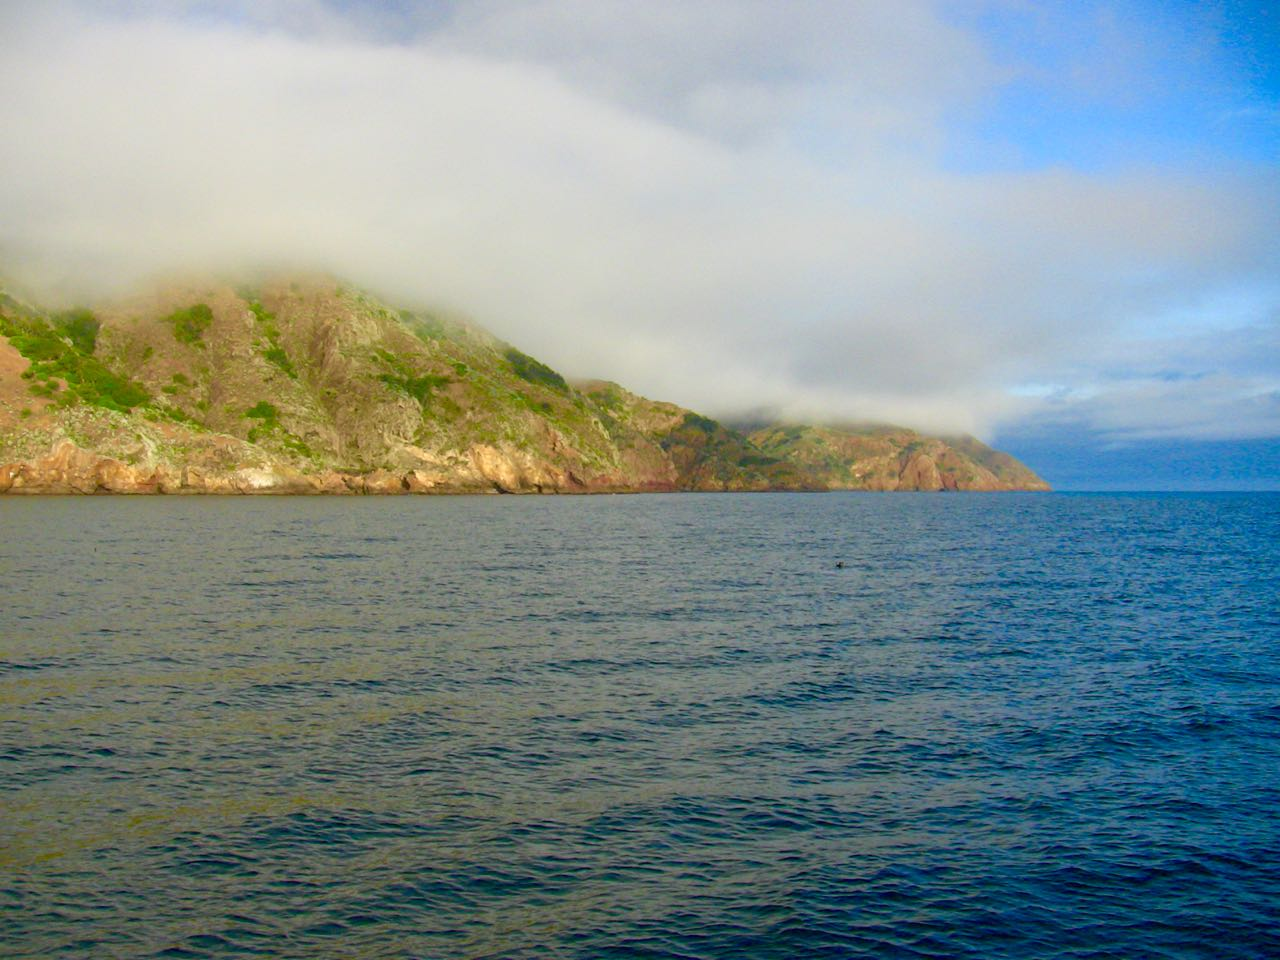 Sail to Diablo anchorage on Santa Cruz Island with Capt. Dan Ryder and Sail Channel Islands